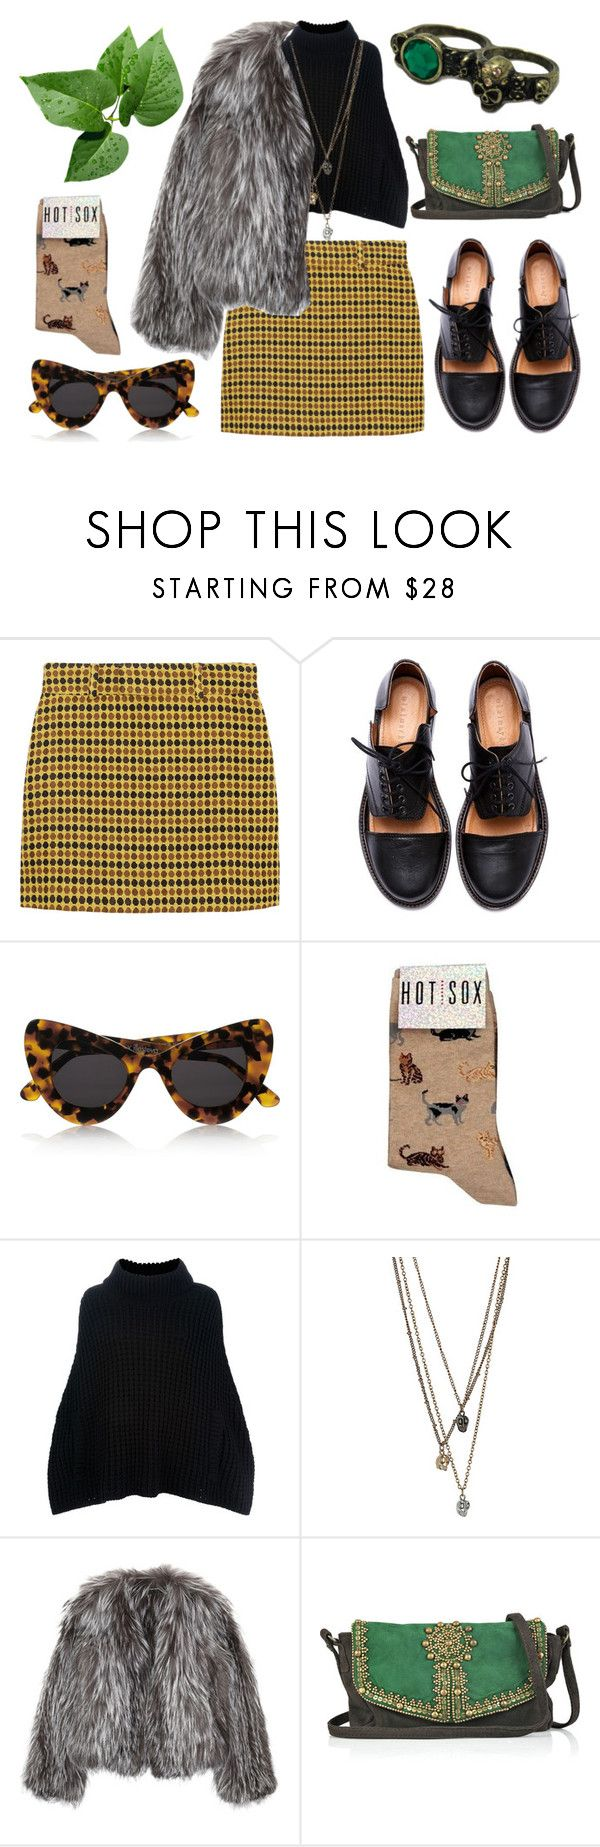 """faux"" by grunge-kittens ❤ liked on Polyvore featuring Miu Miu, Minimarket, Illesteva, HOT SOX, Dolce&Gabbana, Isabel Marant, Antik Batik and Rare London"